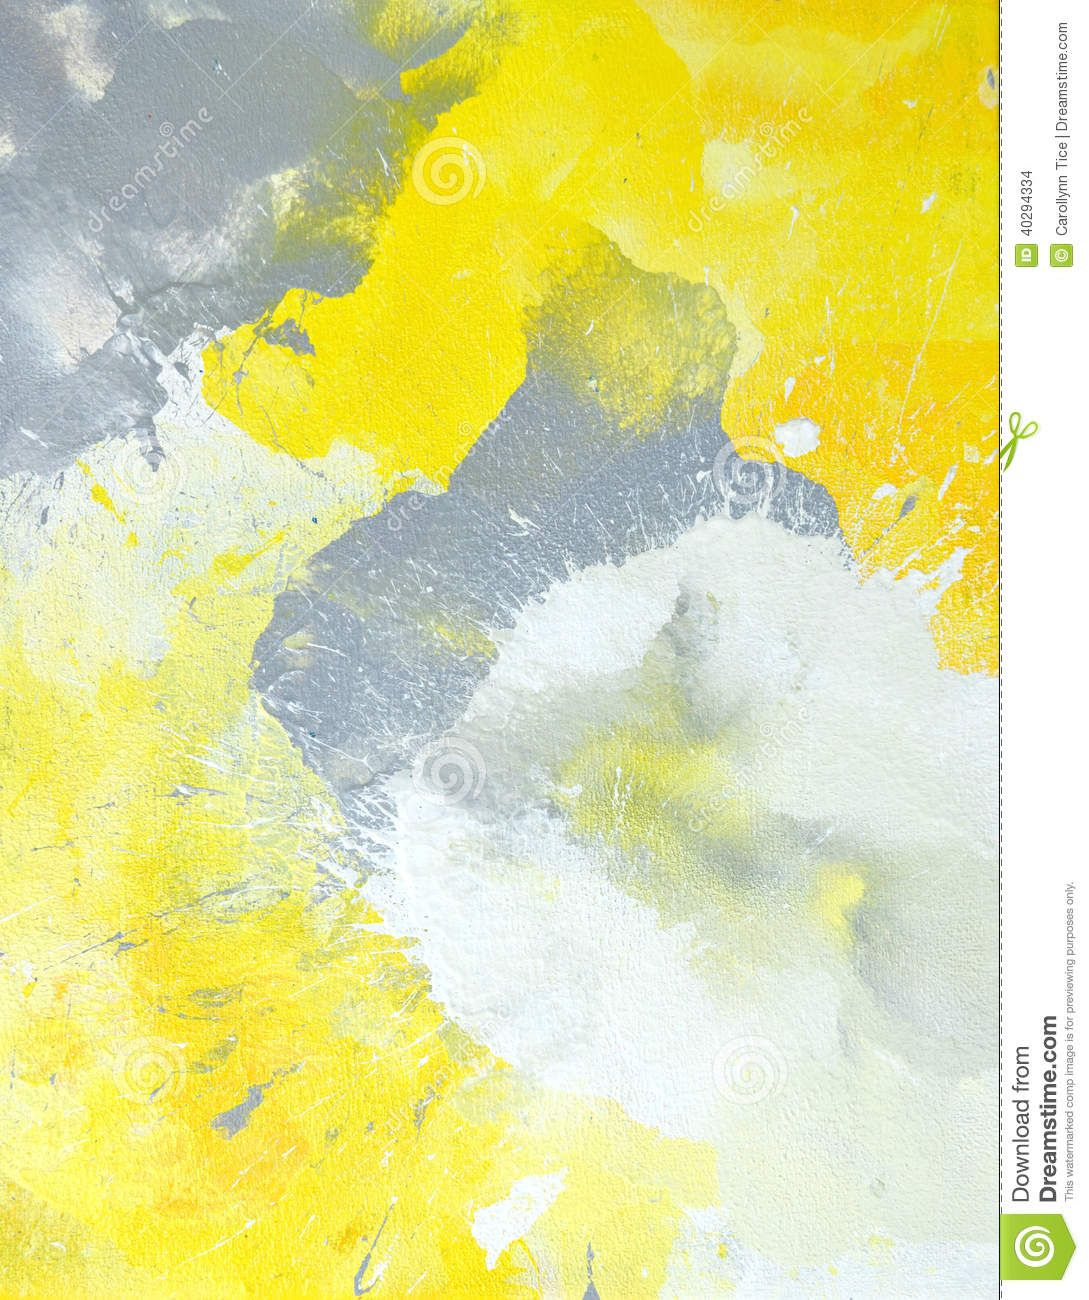 Grey And Yellow Abstract Art Painting   Download From Over 29 Million High  Quality Stock Photos